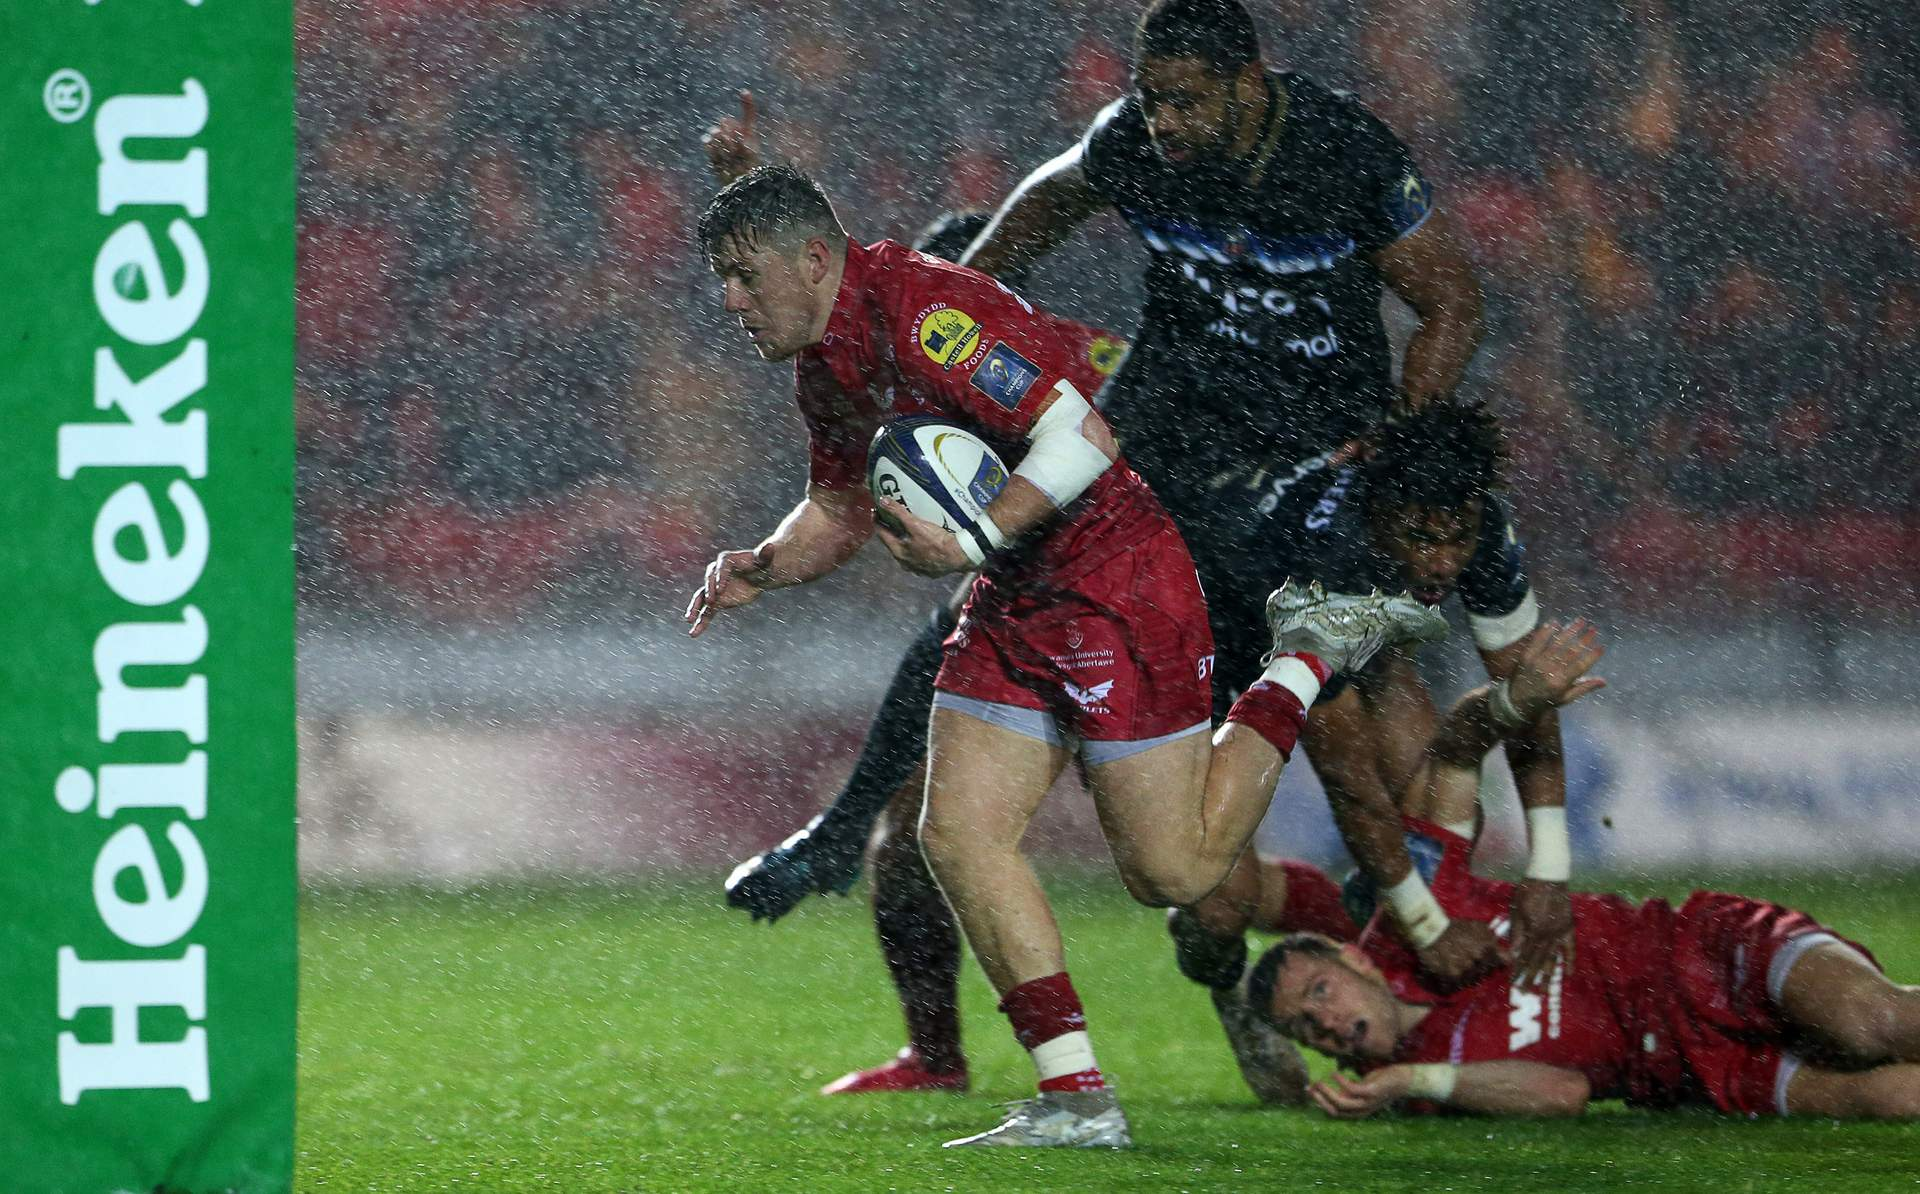 REPORT: Priestland puts boot into old team mates